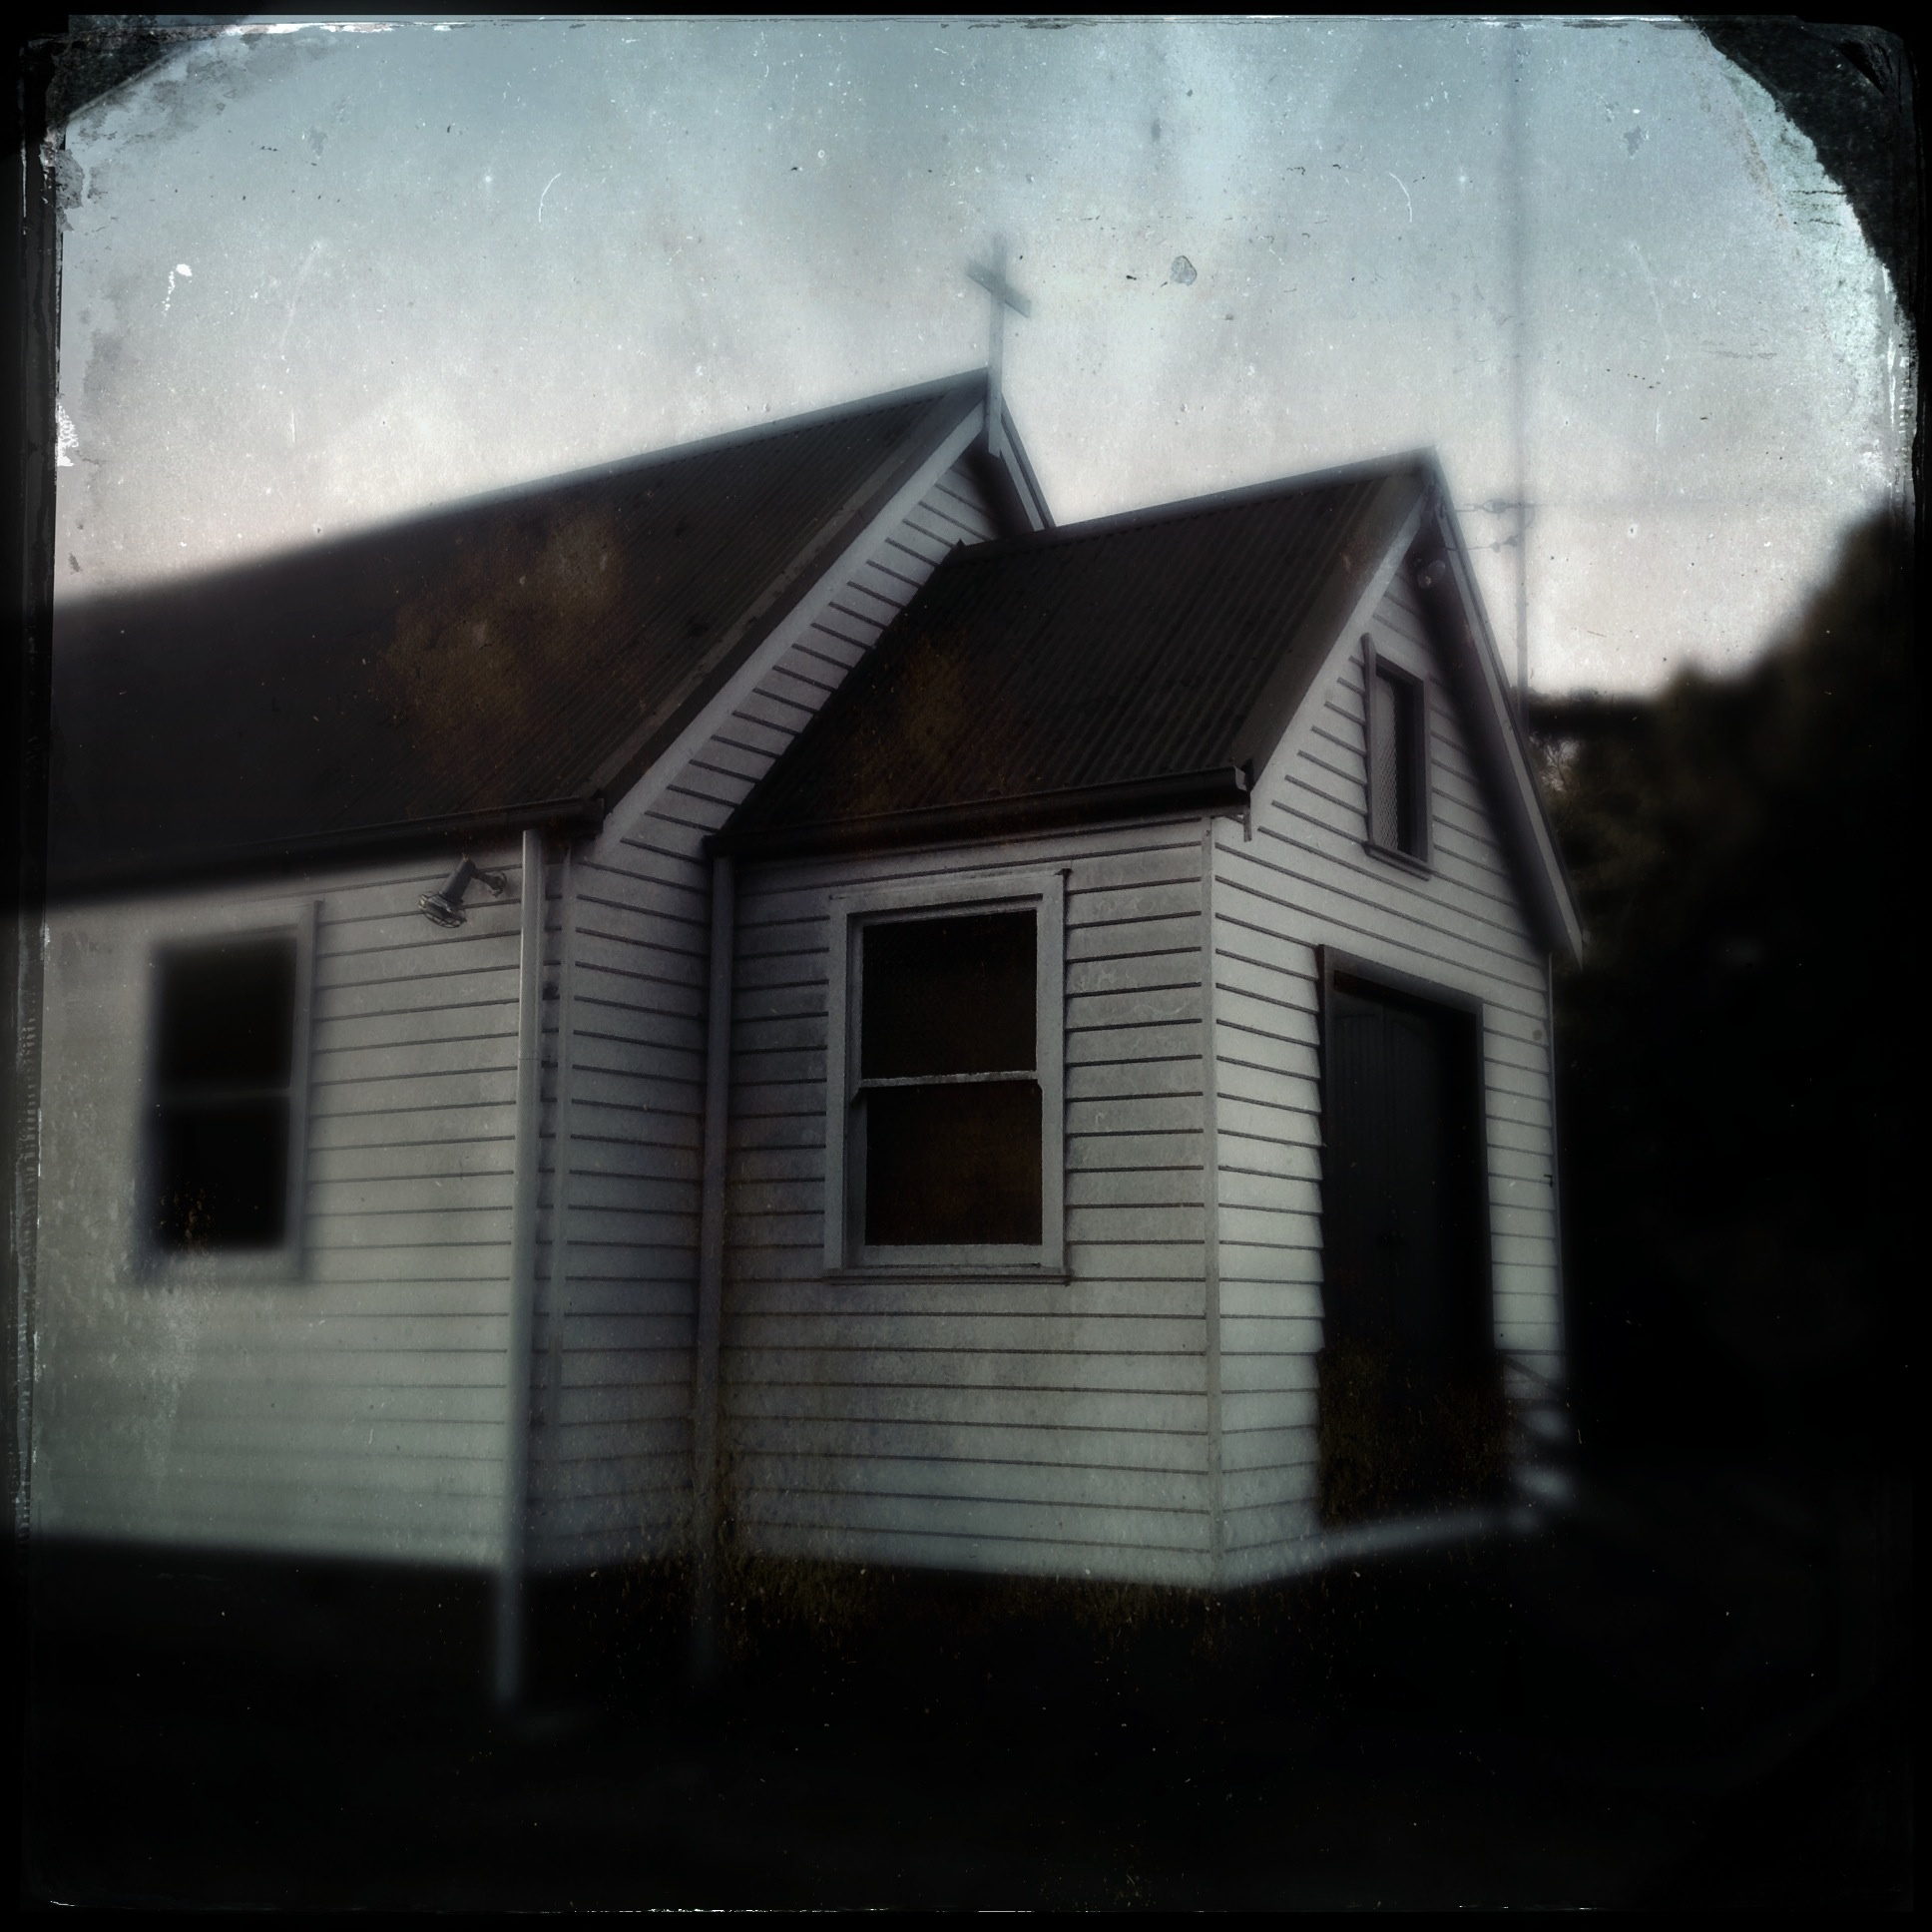 iPad Mini + Hipstamatic, Tinto 1884 lens, C-Type Plate fim, no flash.